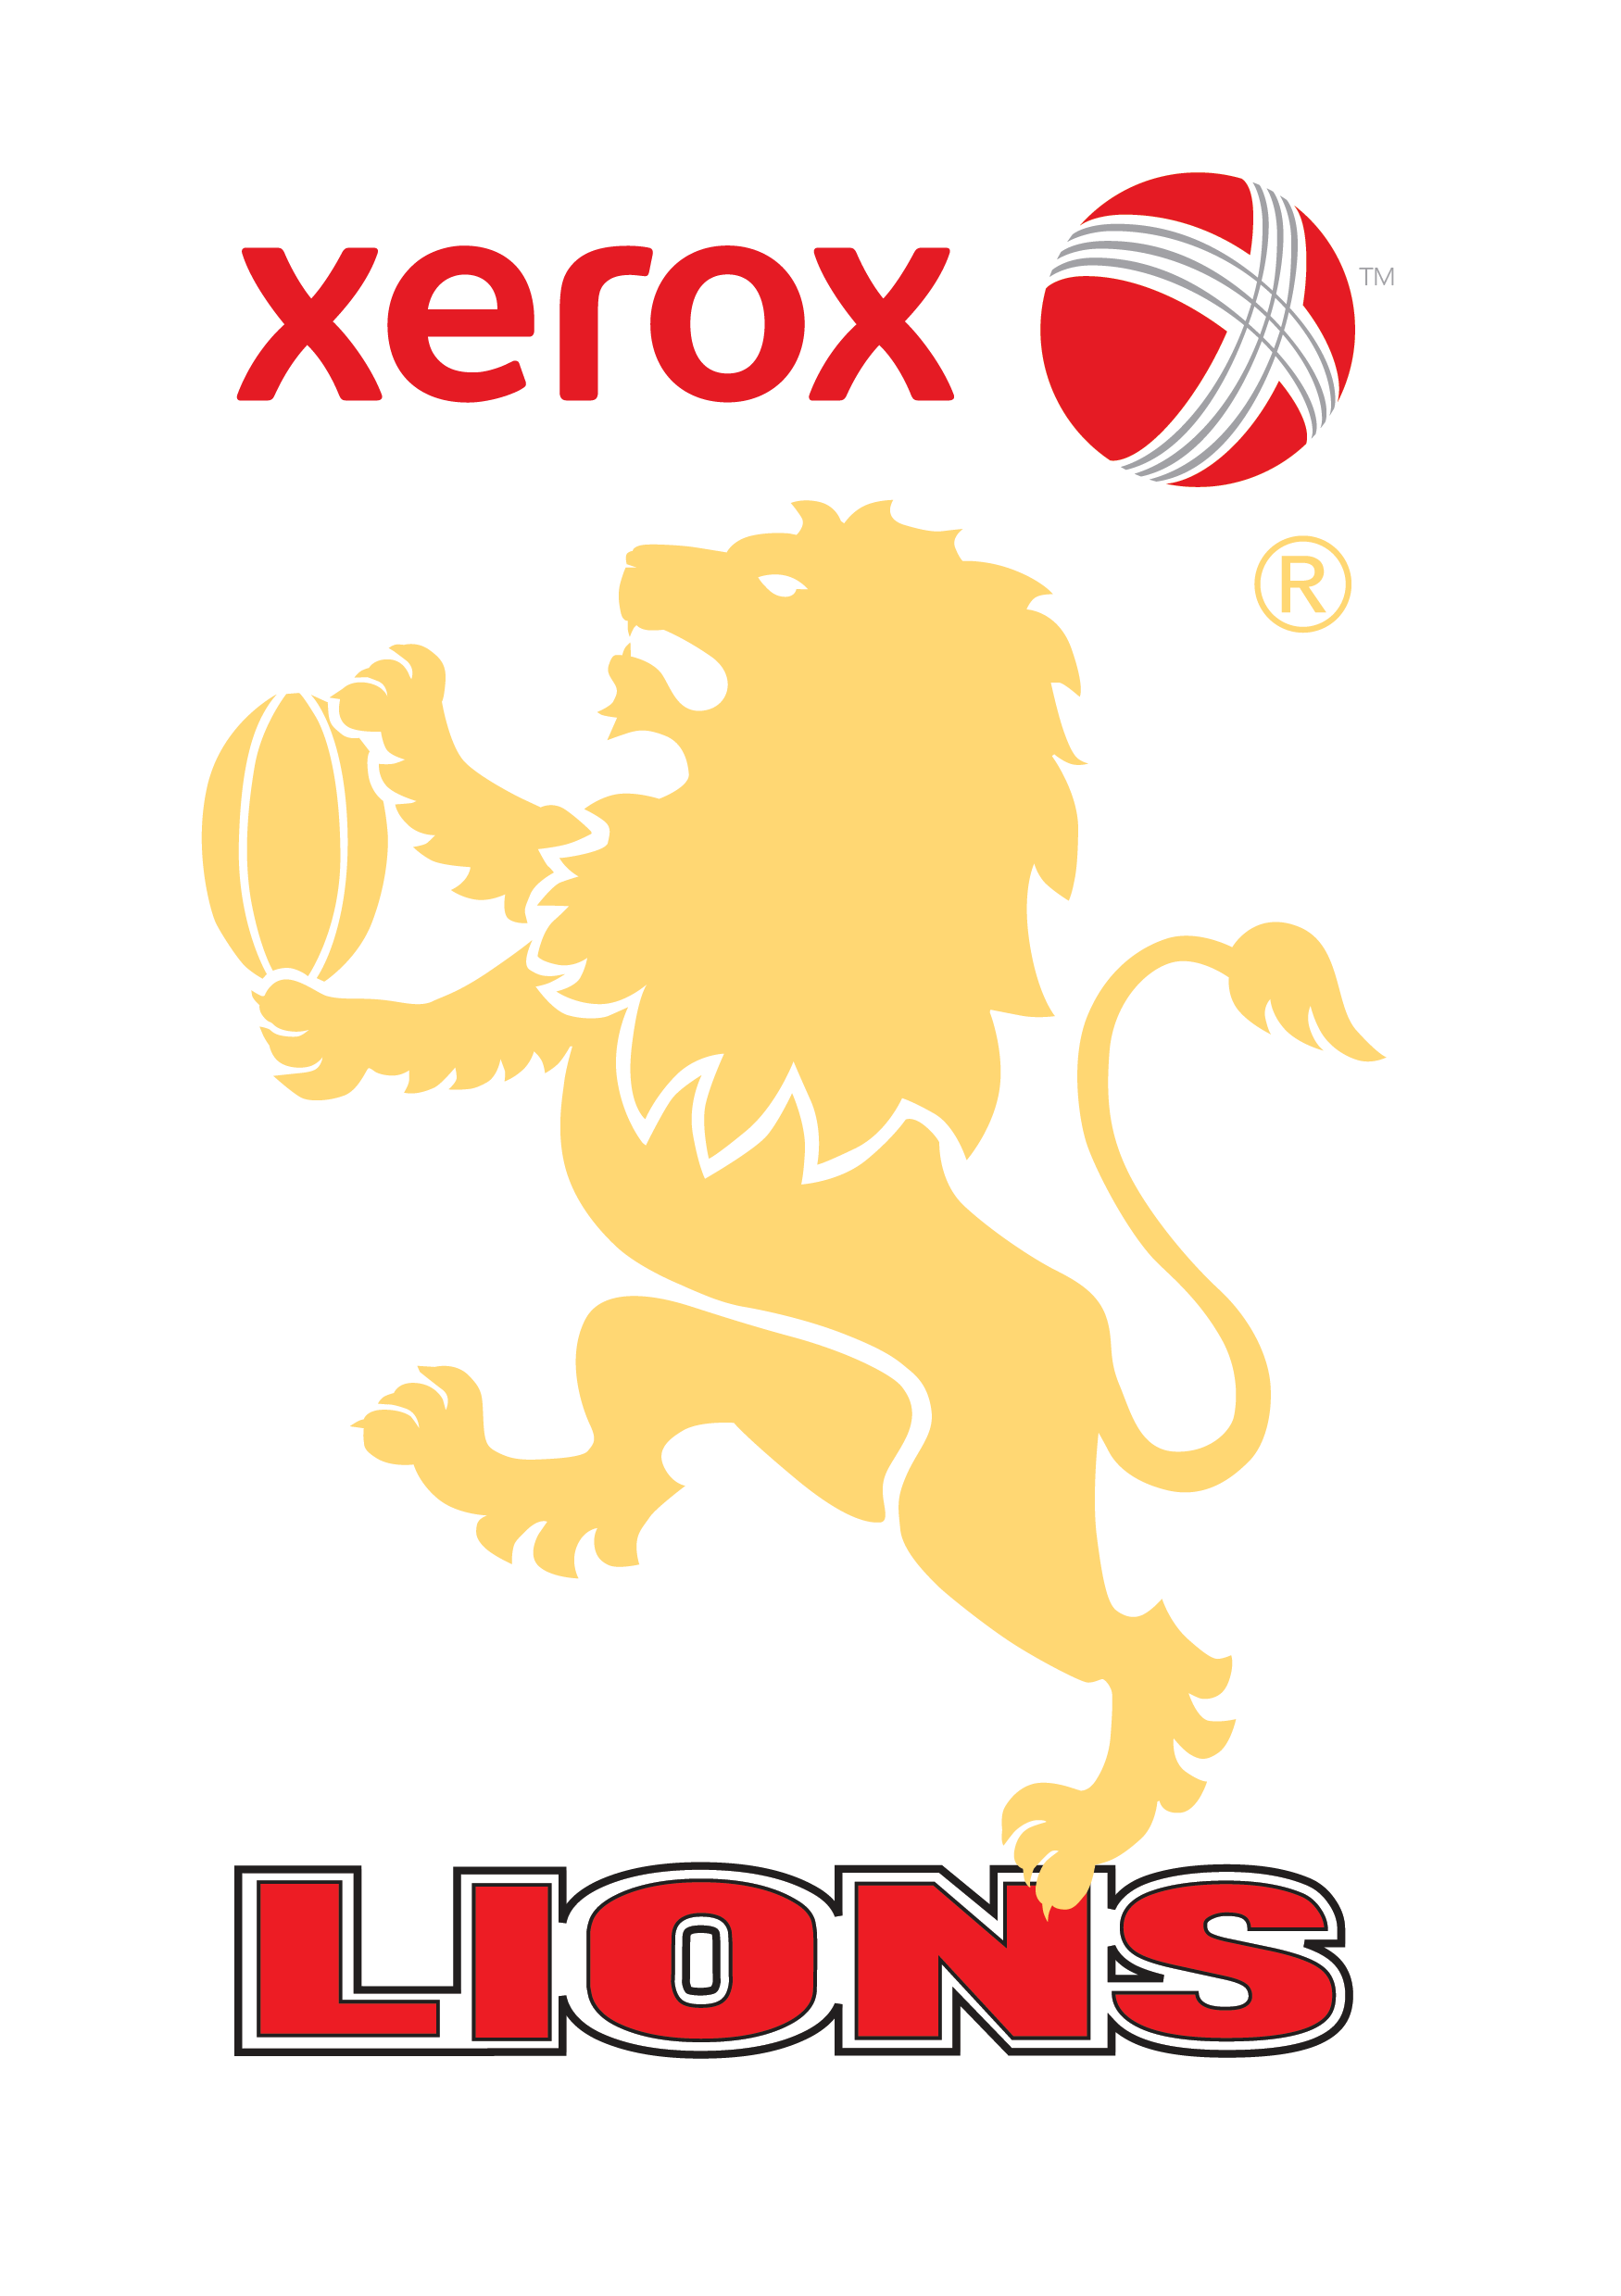 Xerox Golden Lions